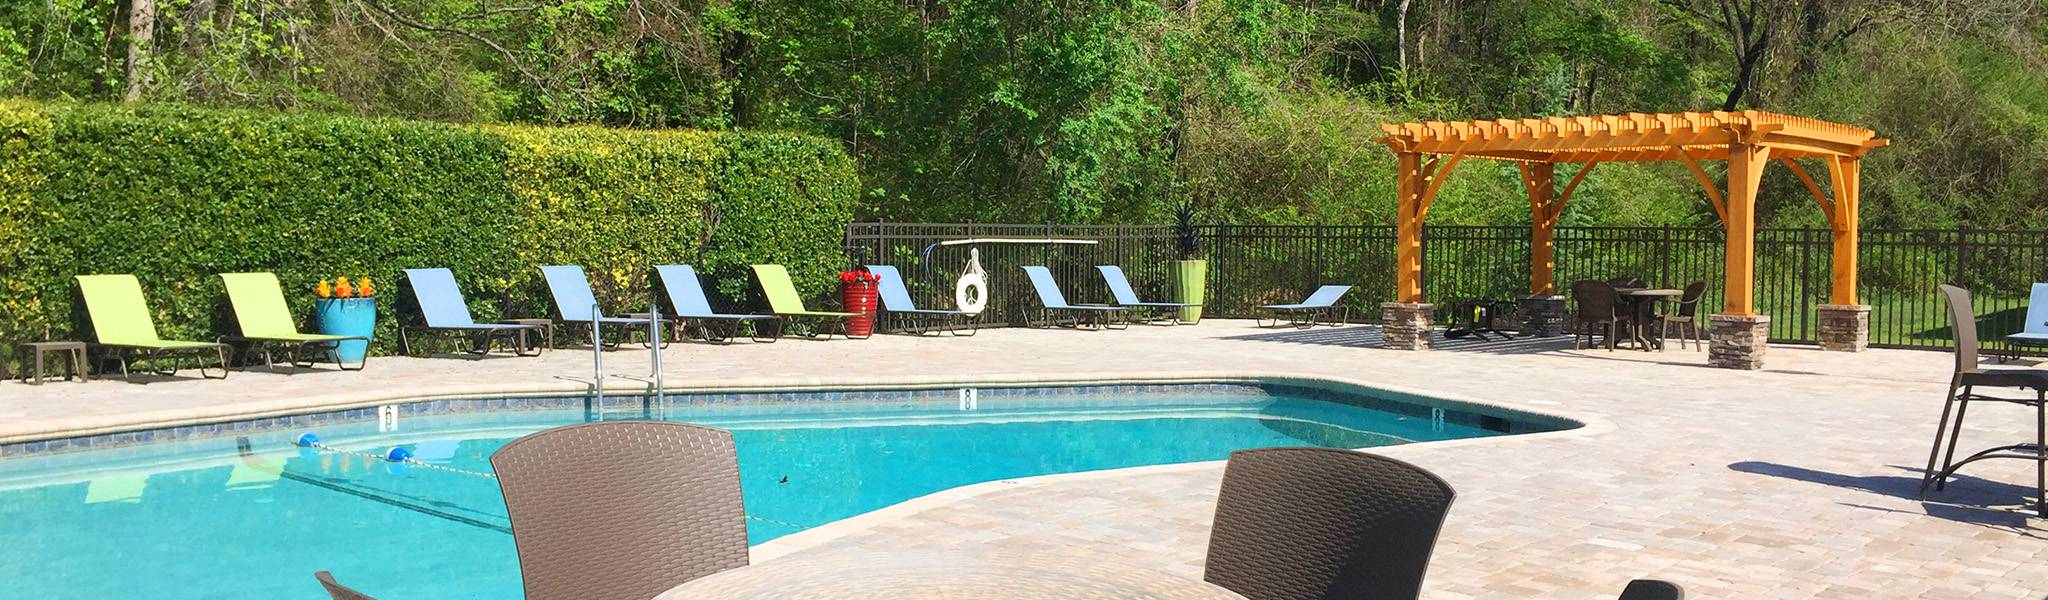 Apartments For Rent In Chapel Hill Carrboro Nc